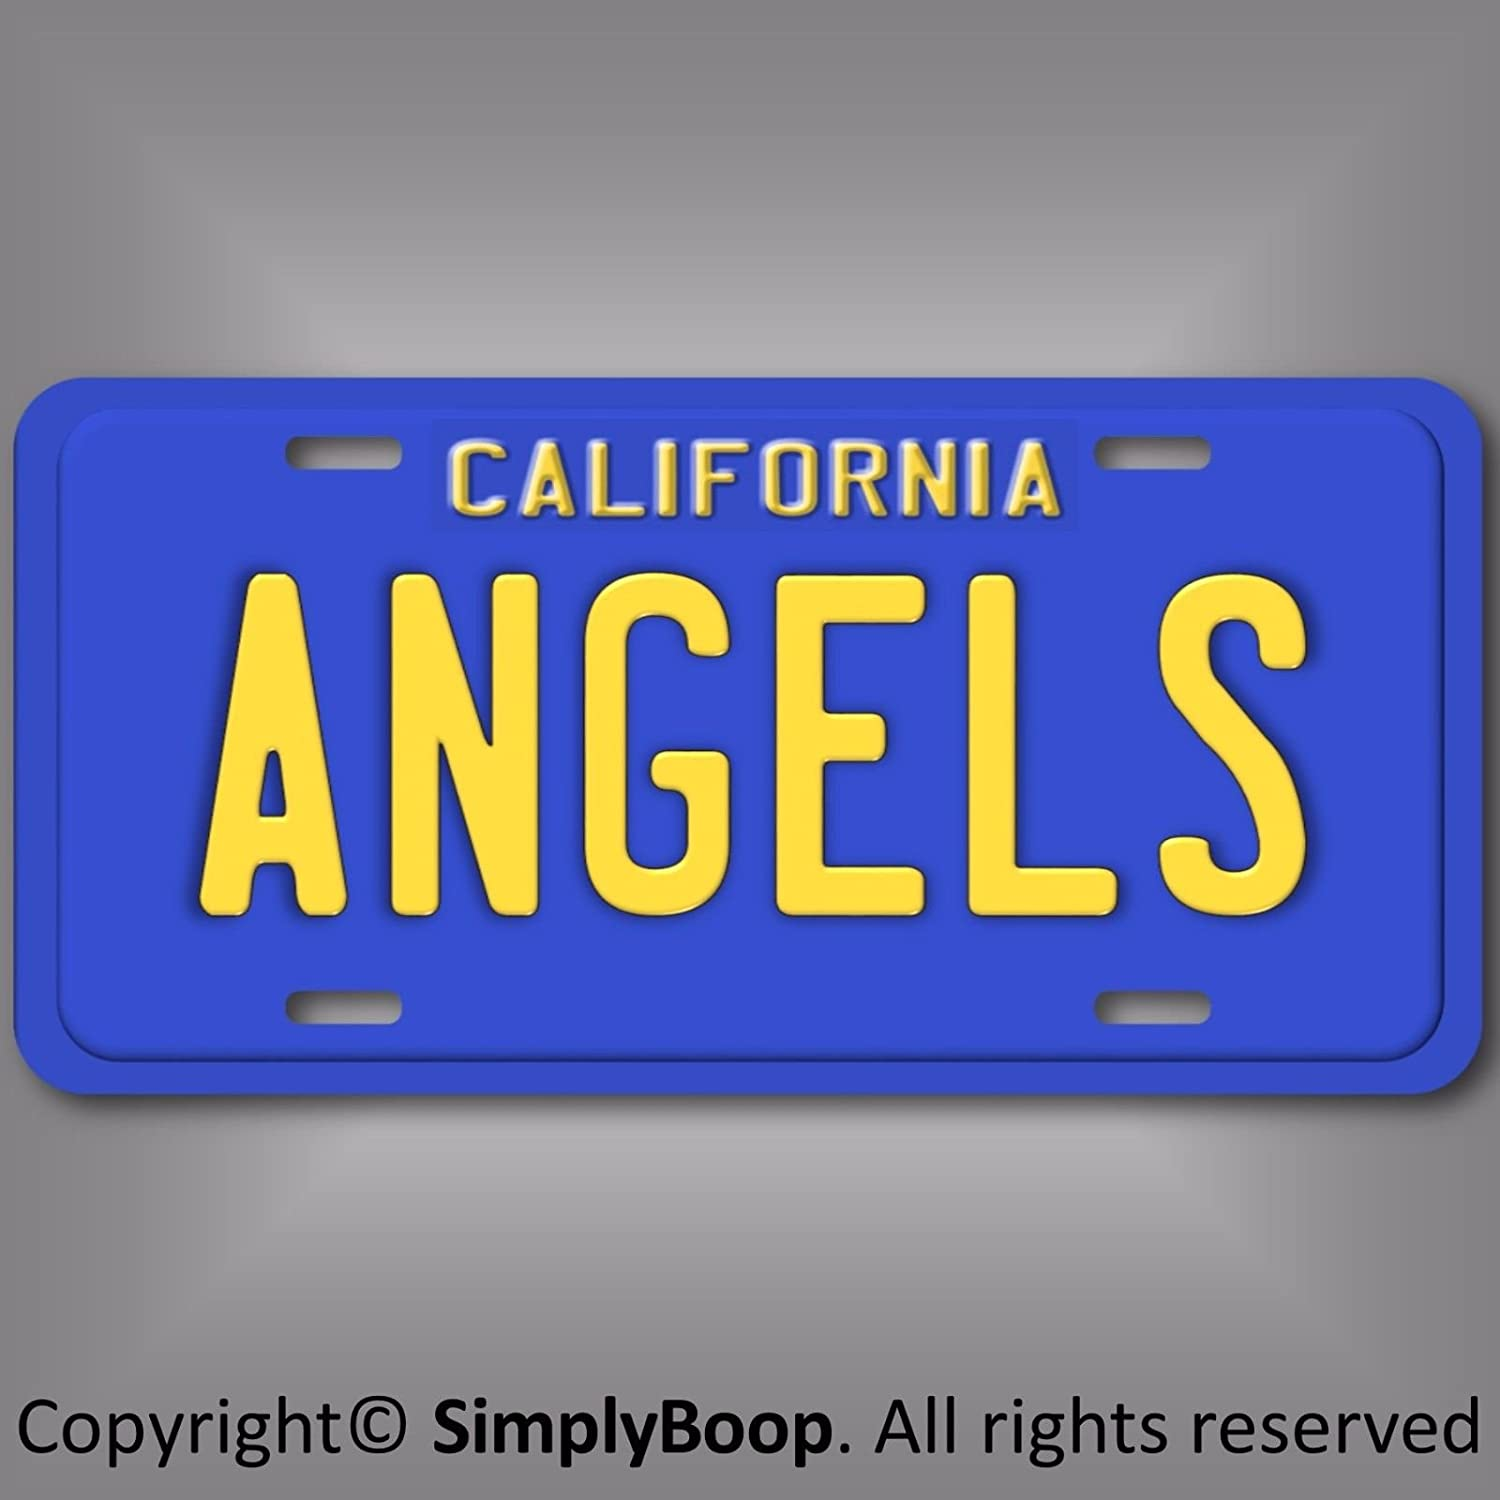 Forever Signs Of Scottsdale Los Angeles California Dodgers Baseball Team License Plate Tag Gift Dad New